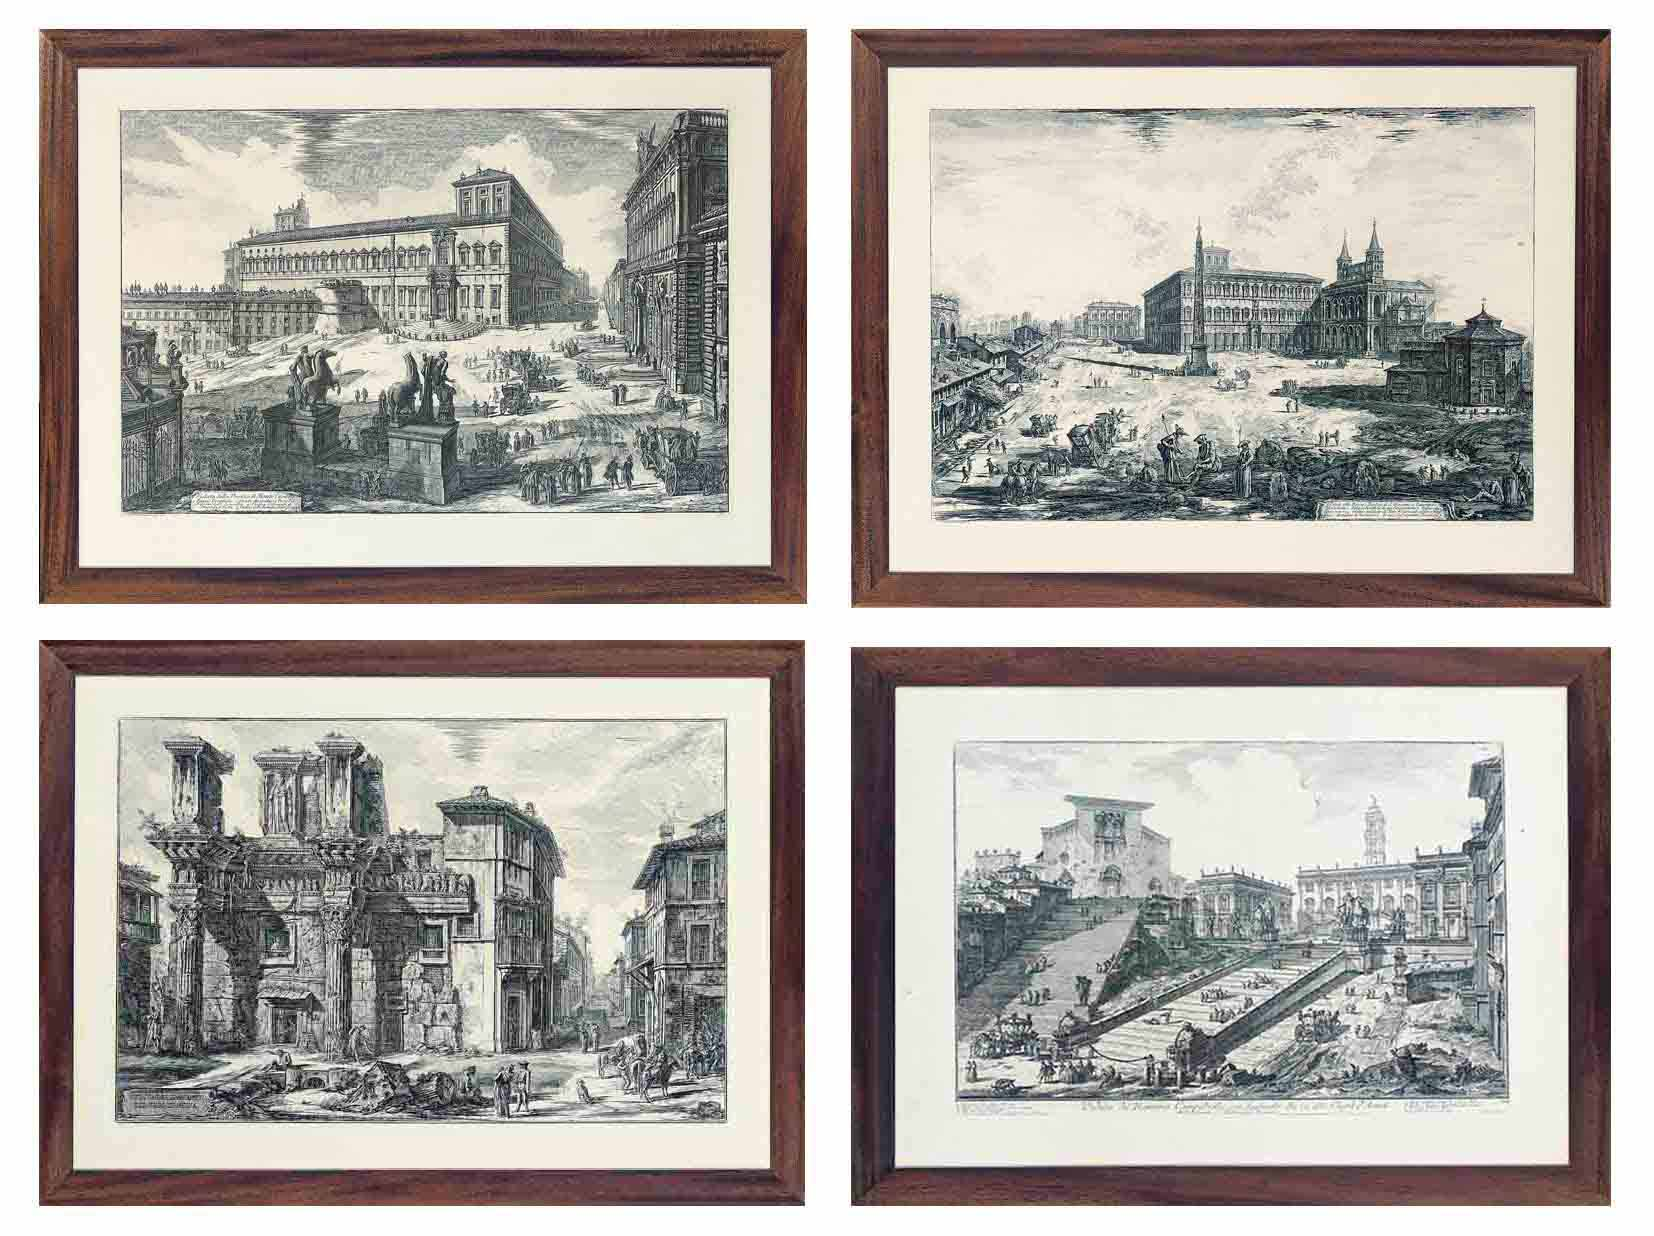 Views of Rome: The Capitol and the Steps of S. Maria in Aracoeli; Trajan's Column; The Forum of Nerva. Interior of enclosure walls with the two half buried corinthian columns; The Piazza del Quirinale, with the statues of the horse-tamers seen from the back; The piazza and Basilica of S. Giovanni in Laterano (side façade), with the obelisk, palace, and Scala Santa; The Tiber at the mouth of the Colocac Maxima, formerly called the Bel Lido; and The interior of the Pantheon